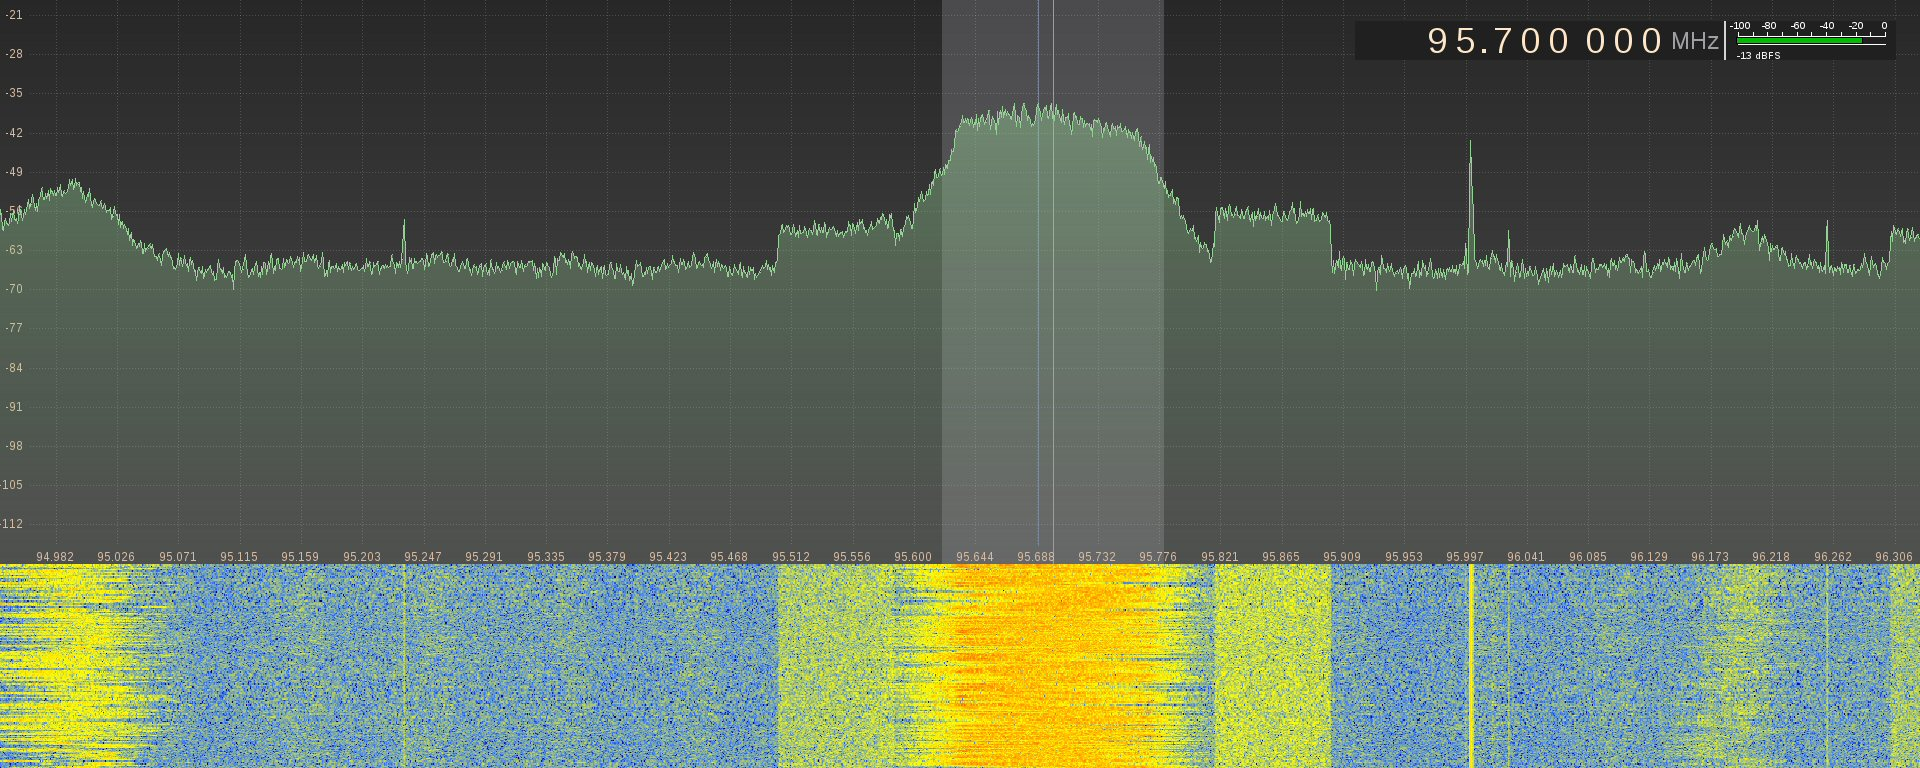 HD Radio waveform